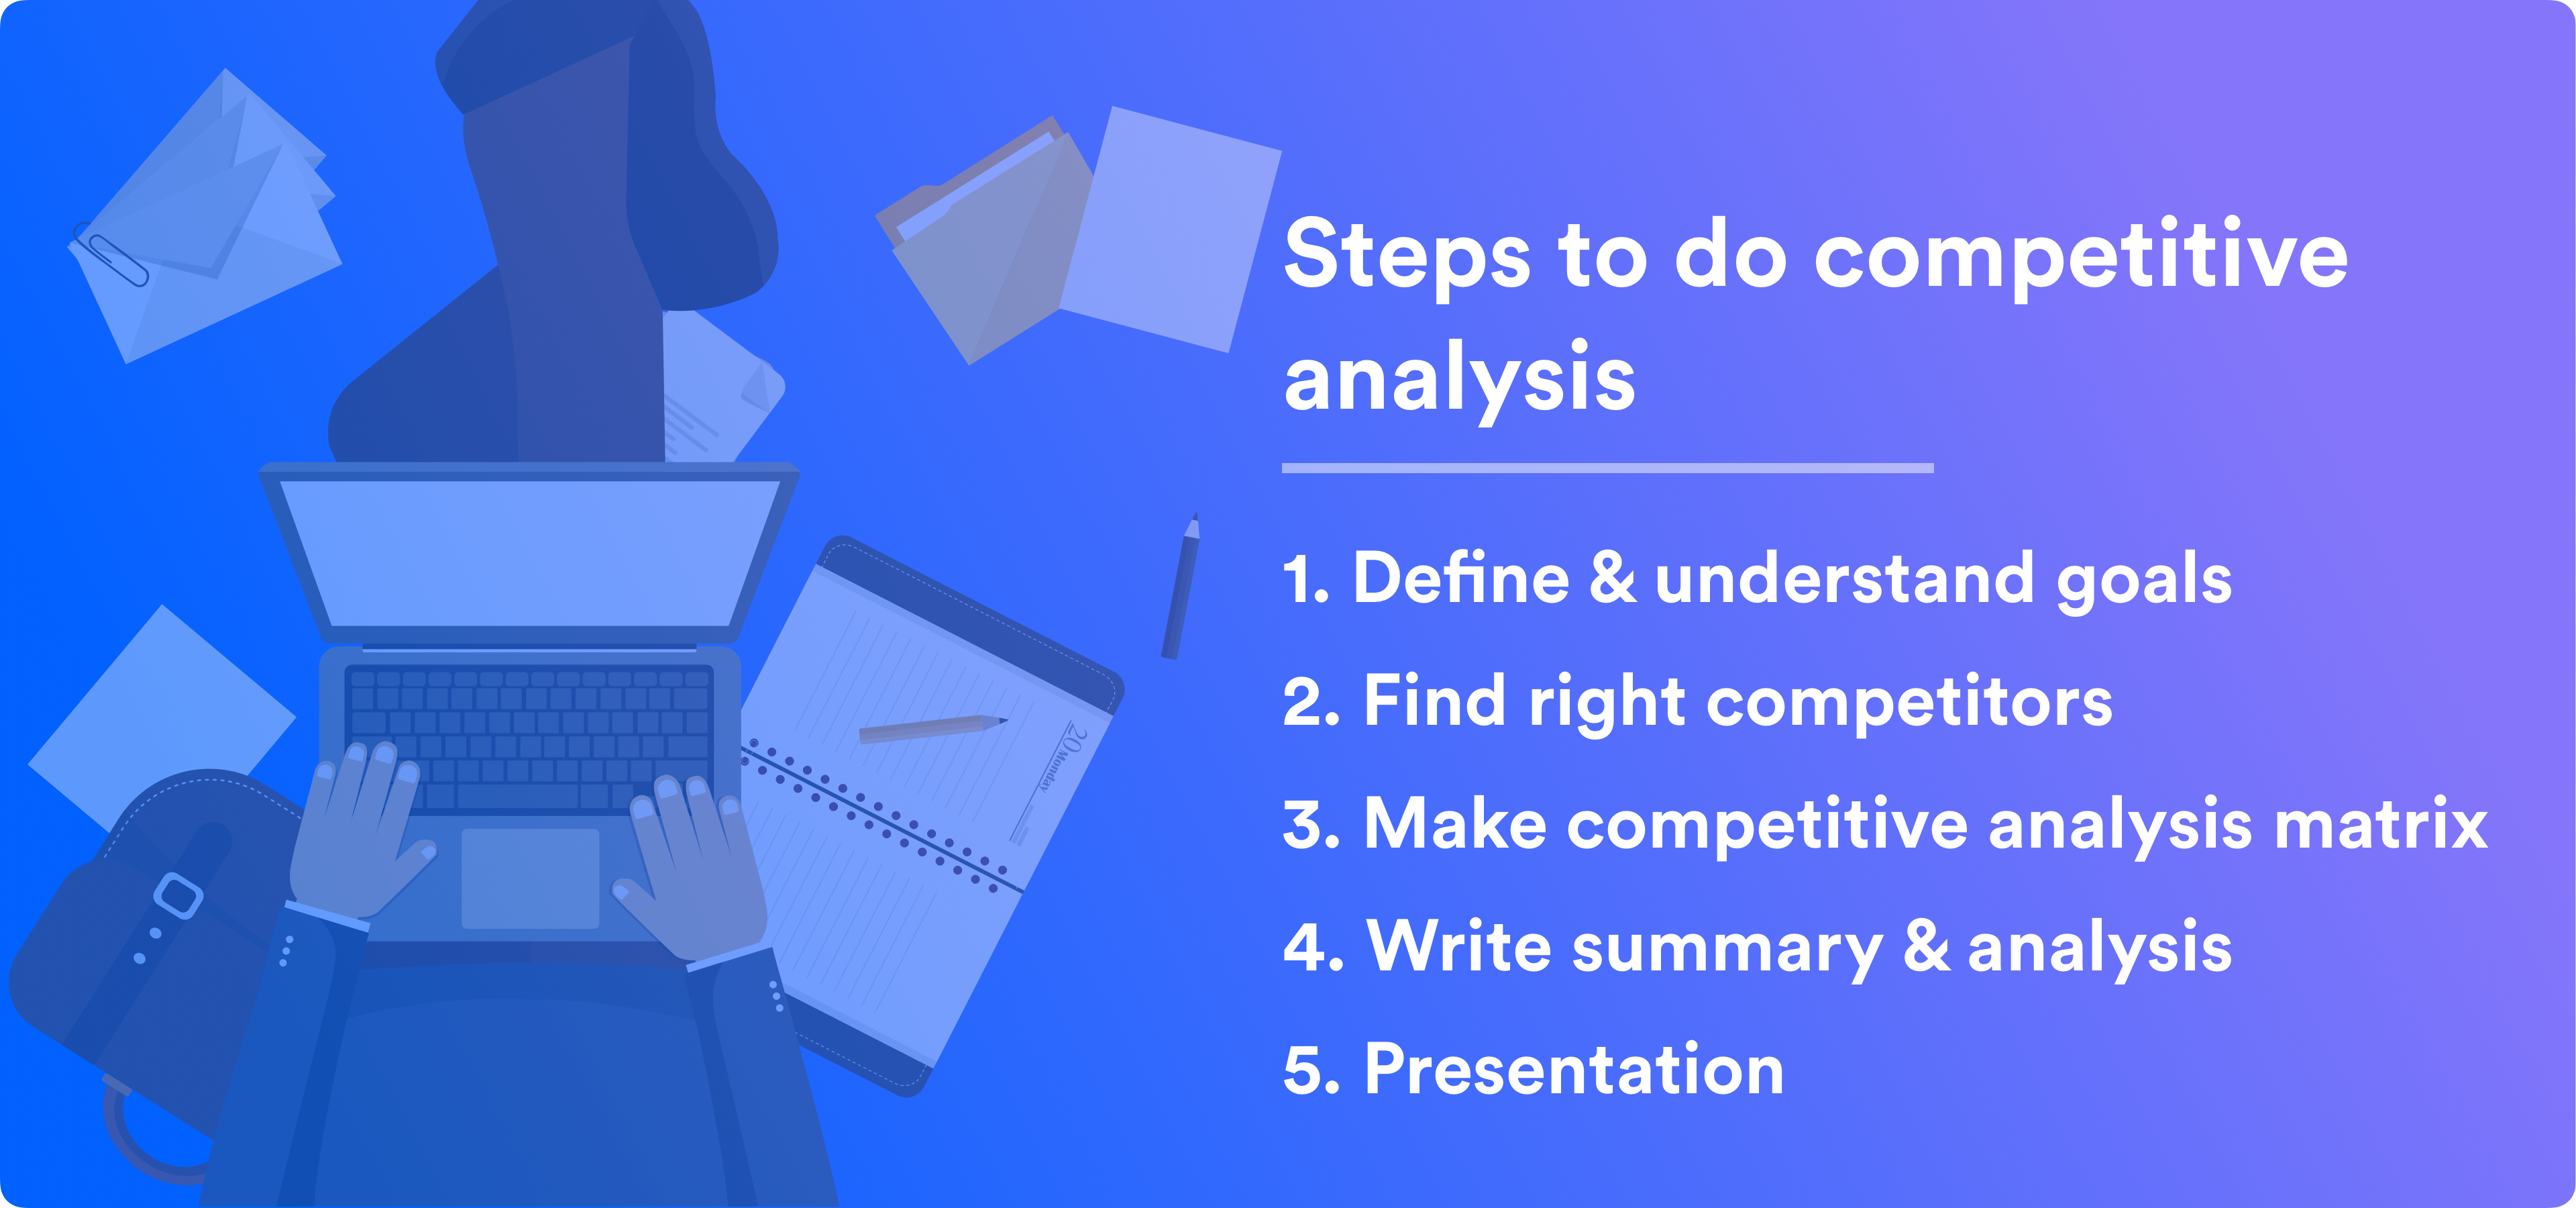 competitor analysis a brief guide Competitive analysis is a broad term for the practice of researching, analyzing, and comparing competitors in relation to yourself companies do it for a wide variety of reasons – seo, branding, gtm strategy , etc – and you can definitely use it for ux and conversion optimization, too.